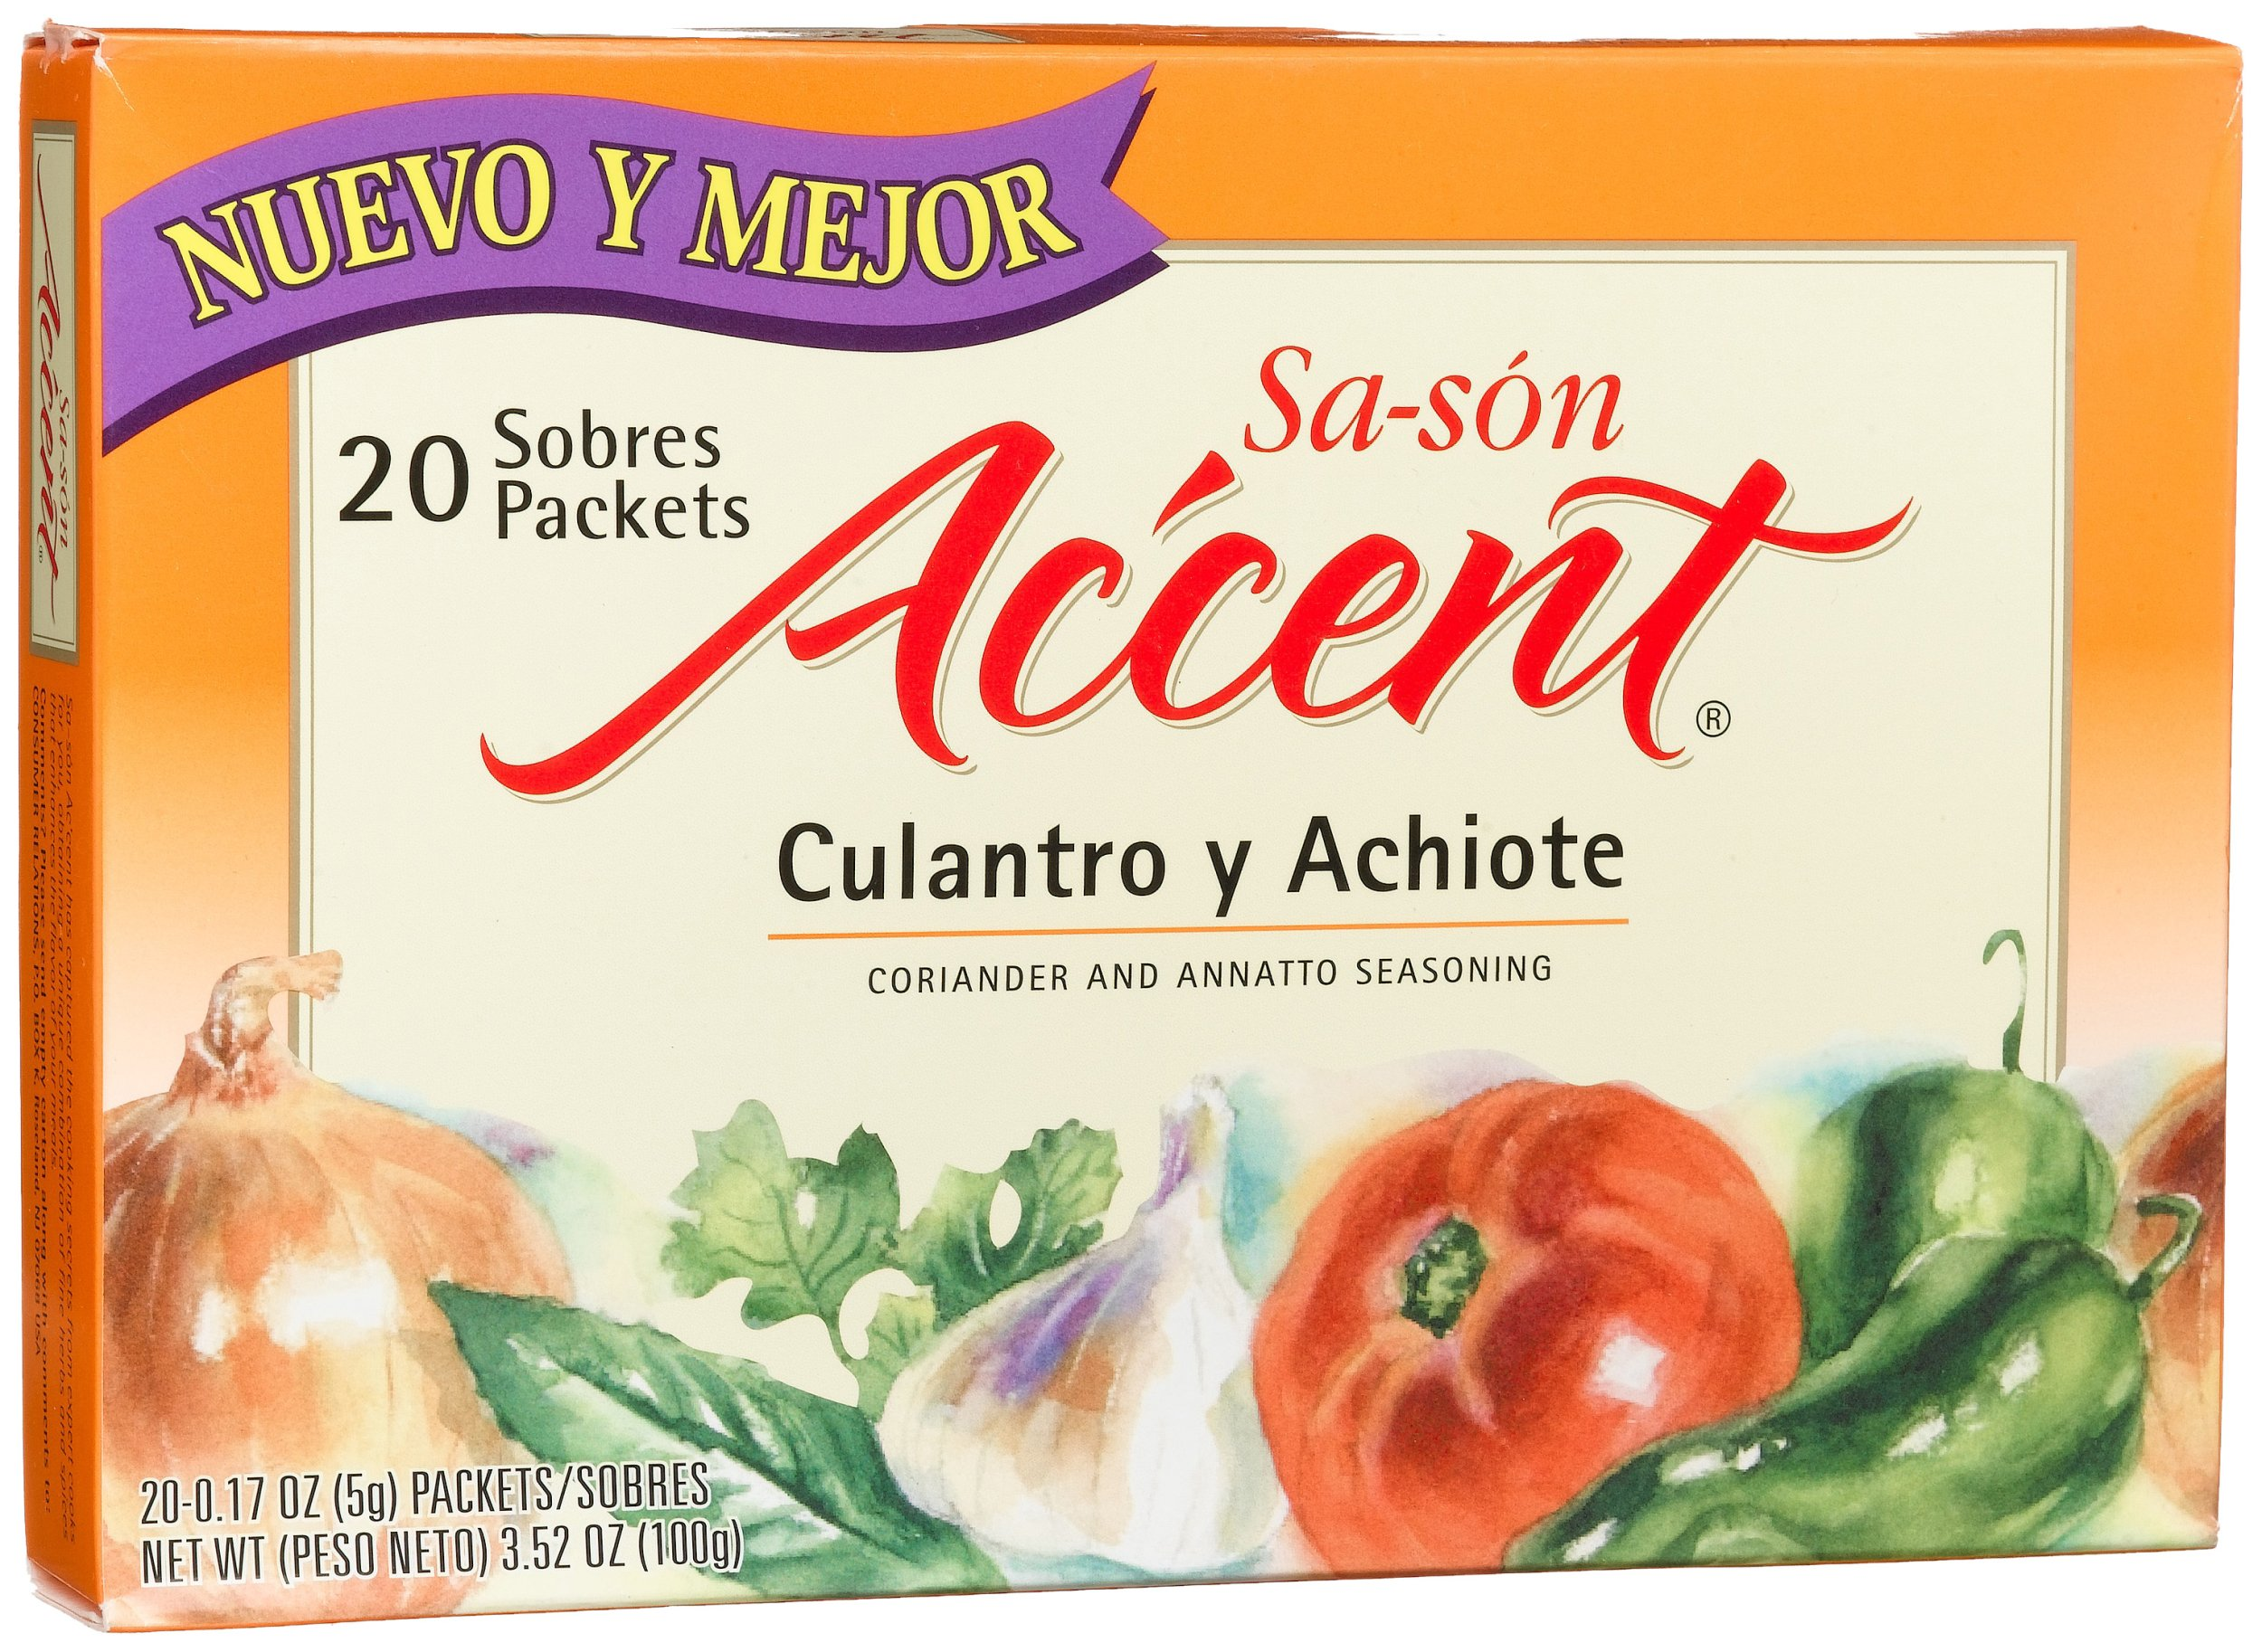 Sa-son Accent Seasoning, Culantro y Achiote (Coriander & Annato Seasoning), 20-Count Packets (Pack of 18)